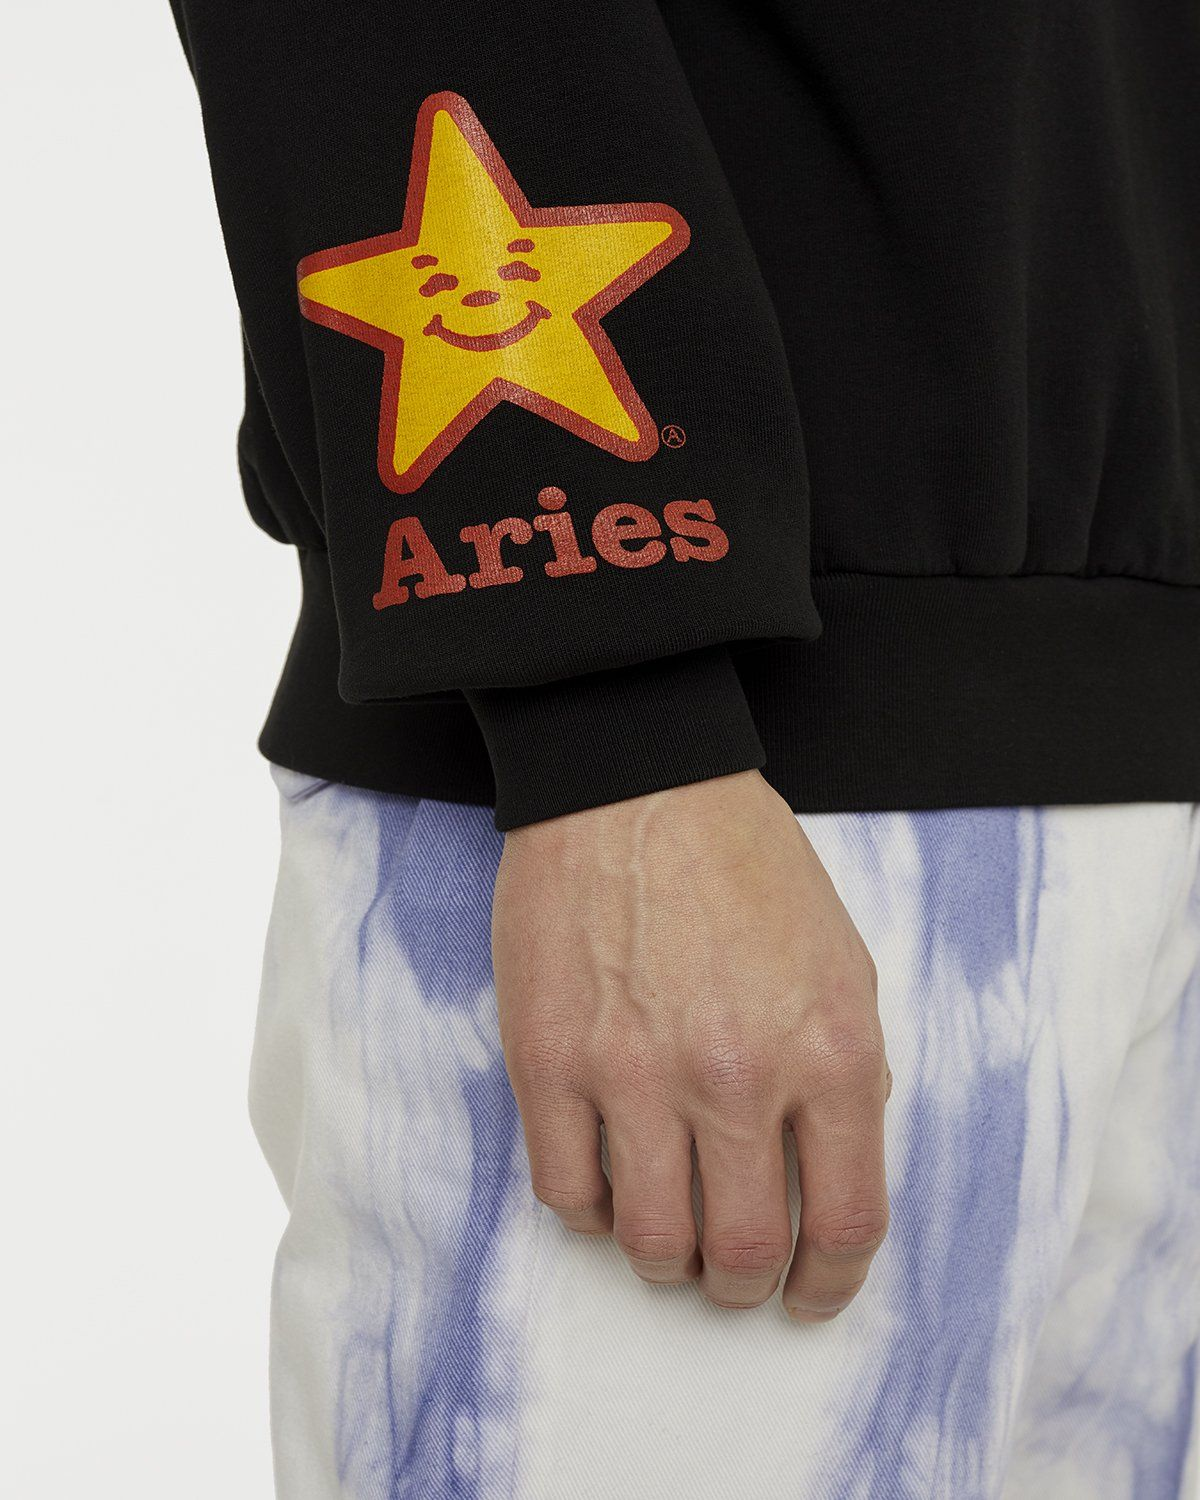 Aries - Fast Food Sweatshirt Black - Image 6